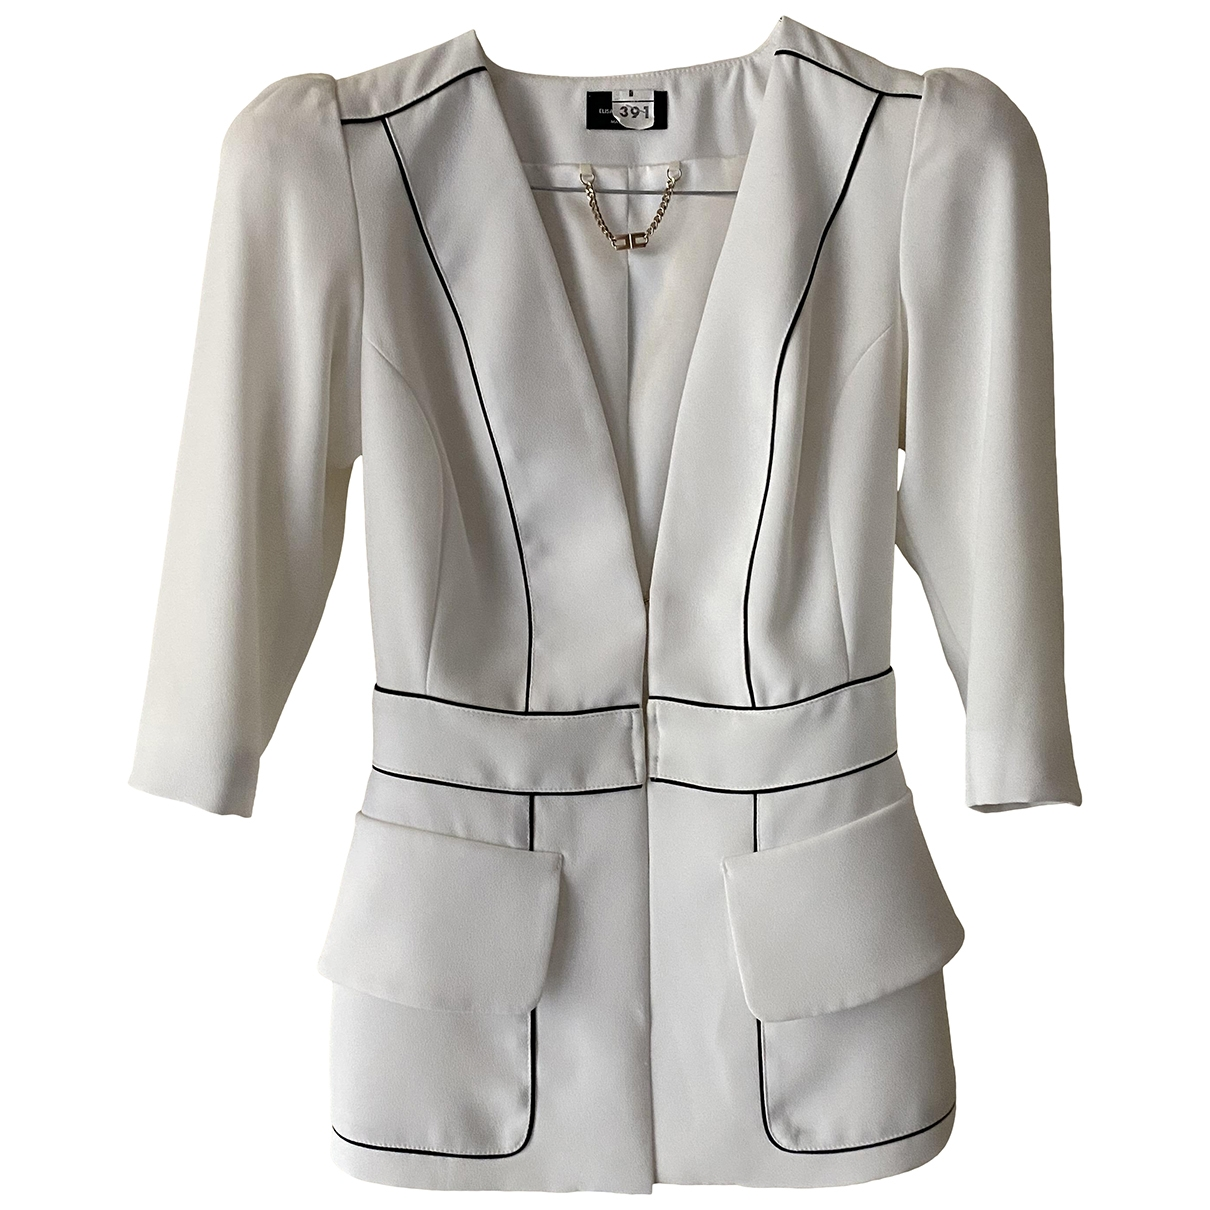 Elisabetta Franchi \N White jacket for Women 40 IT